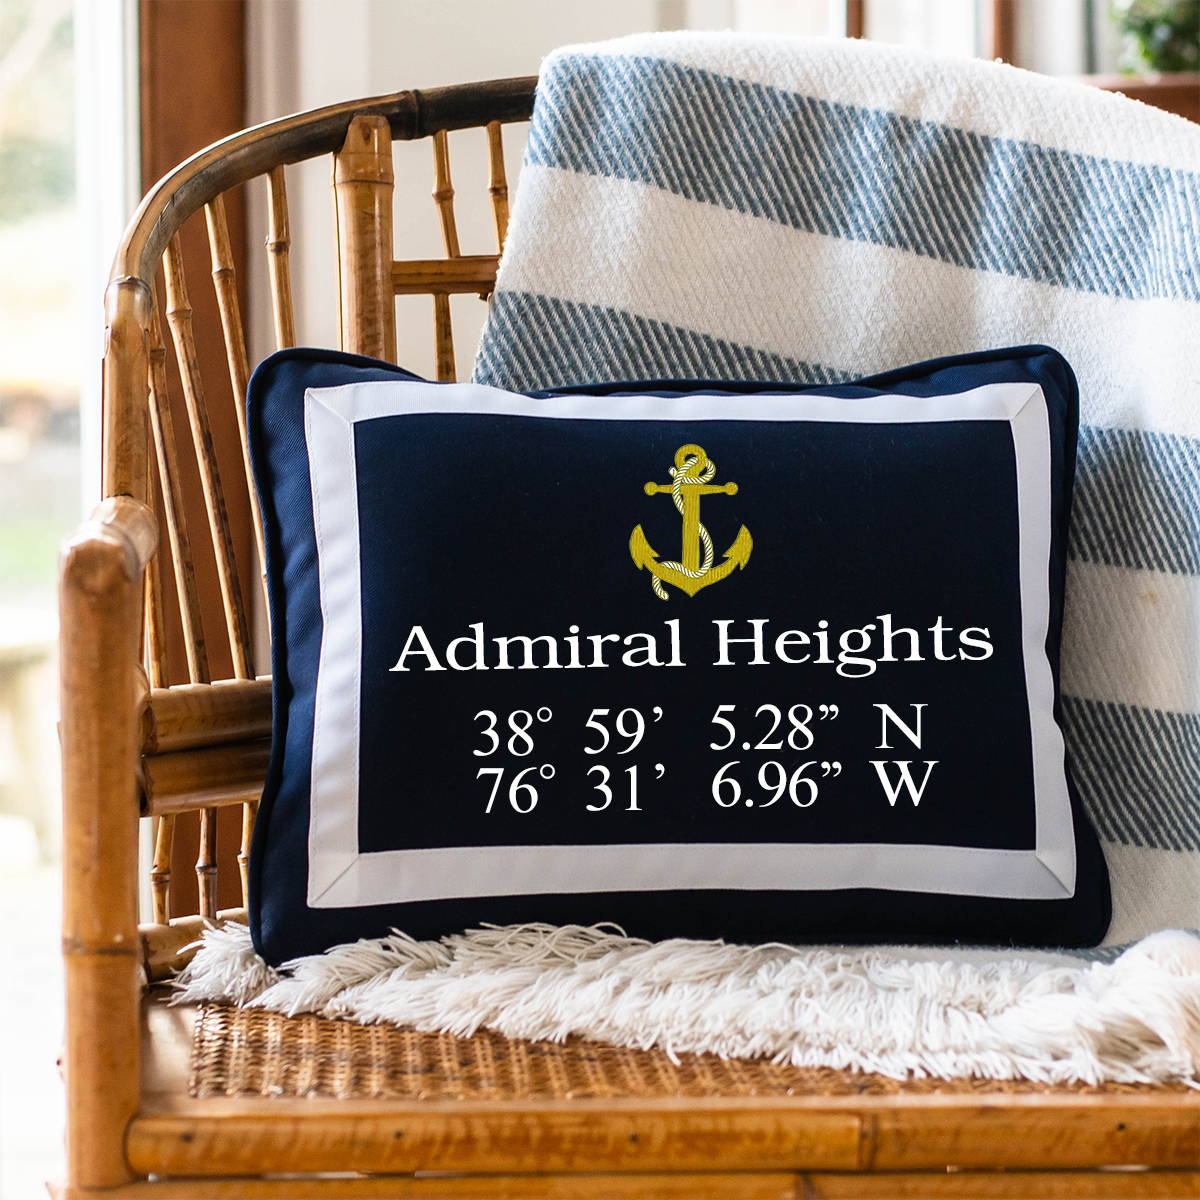 Admiral Heights